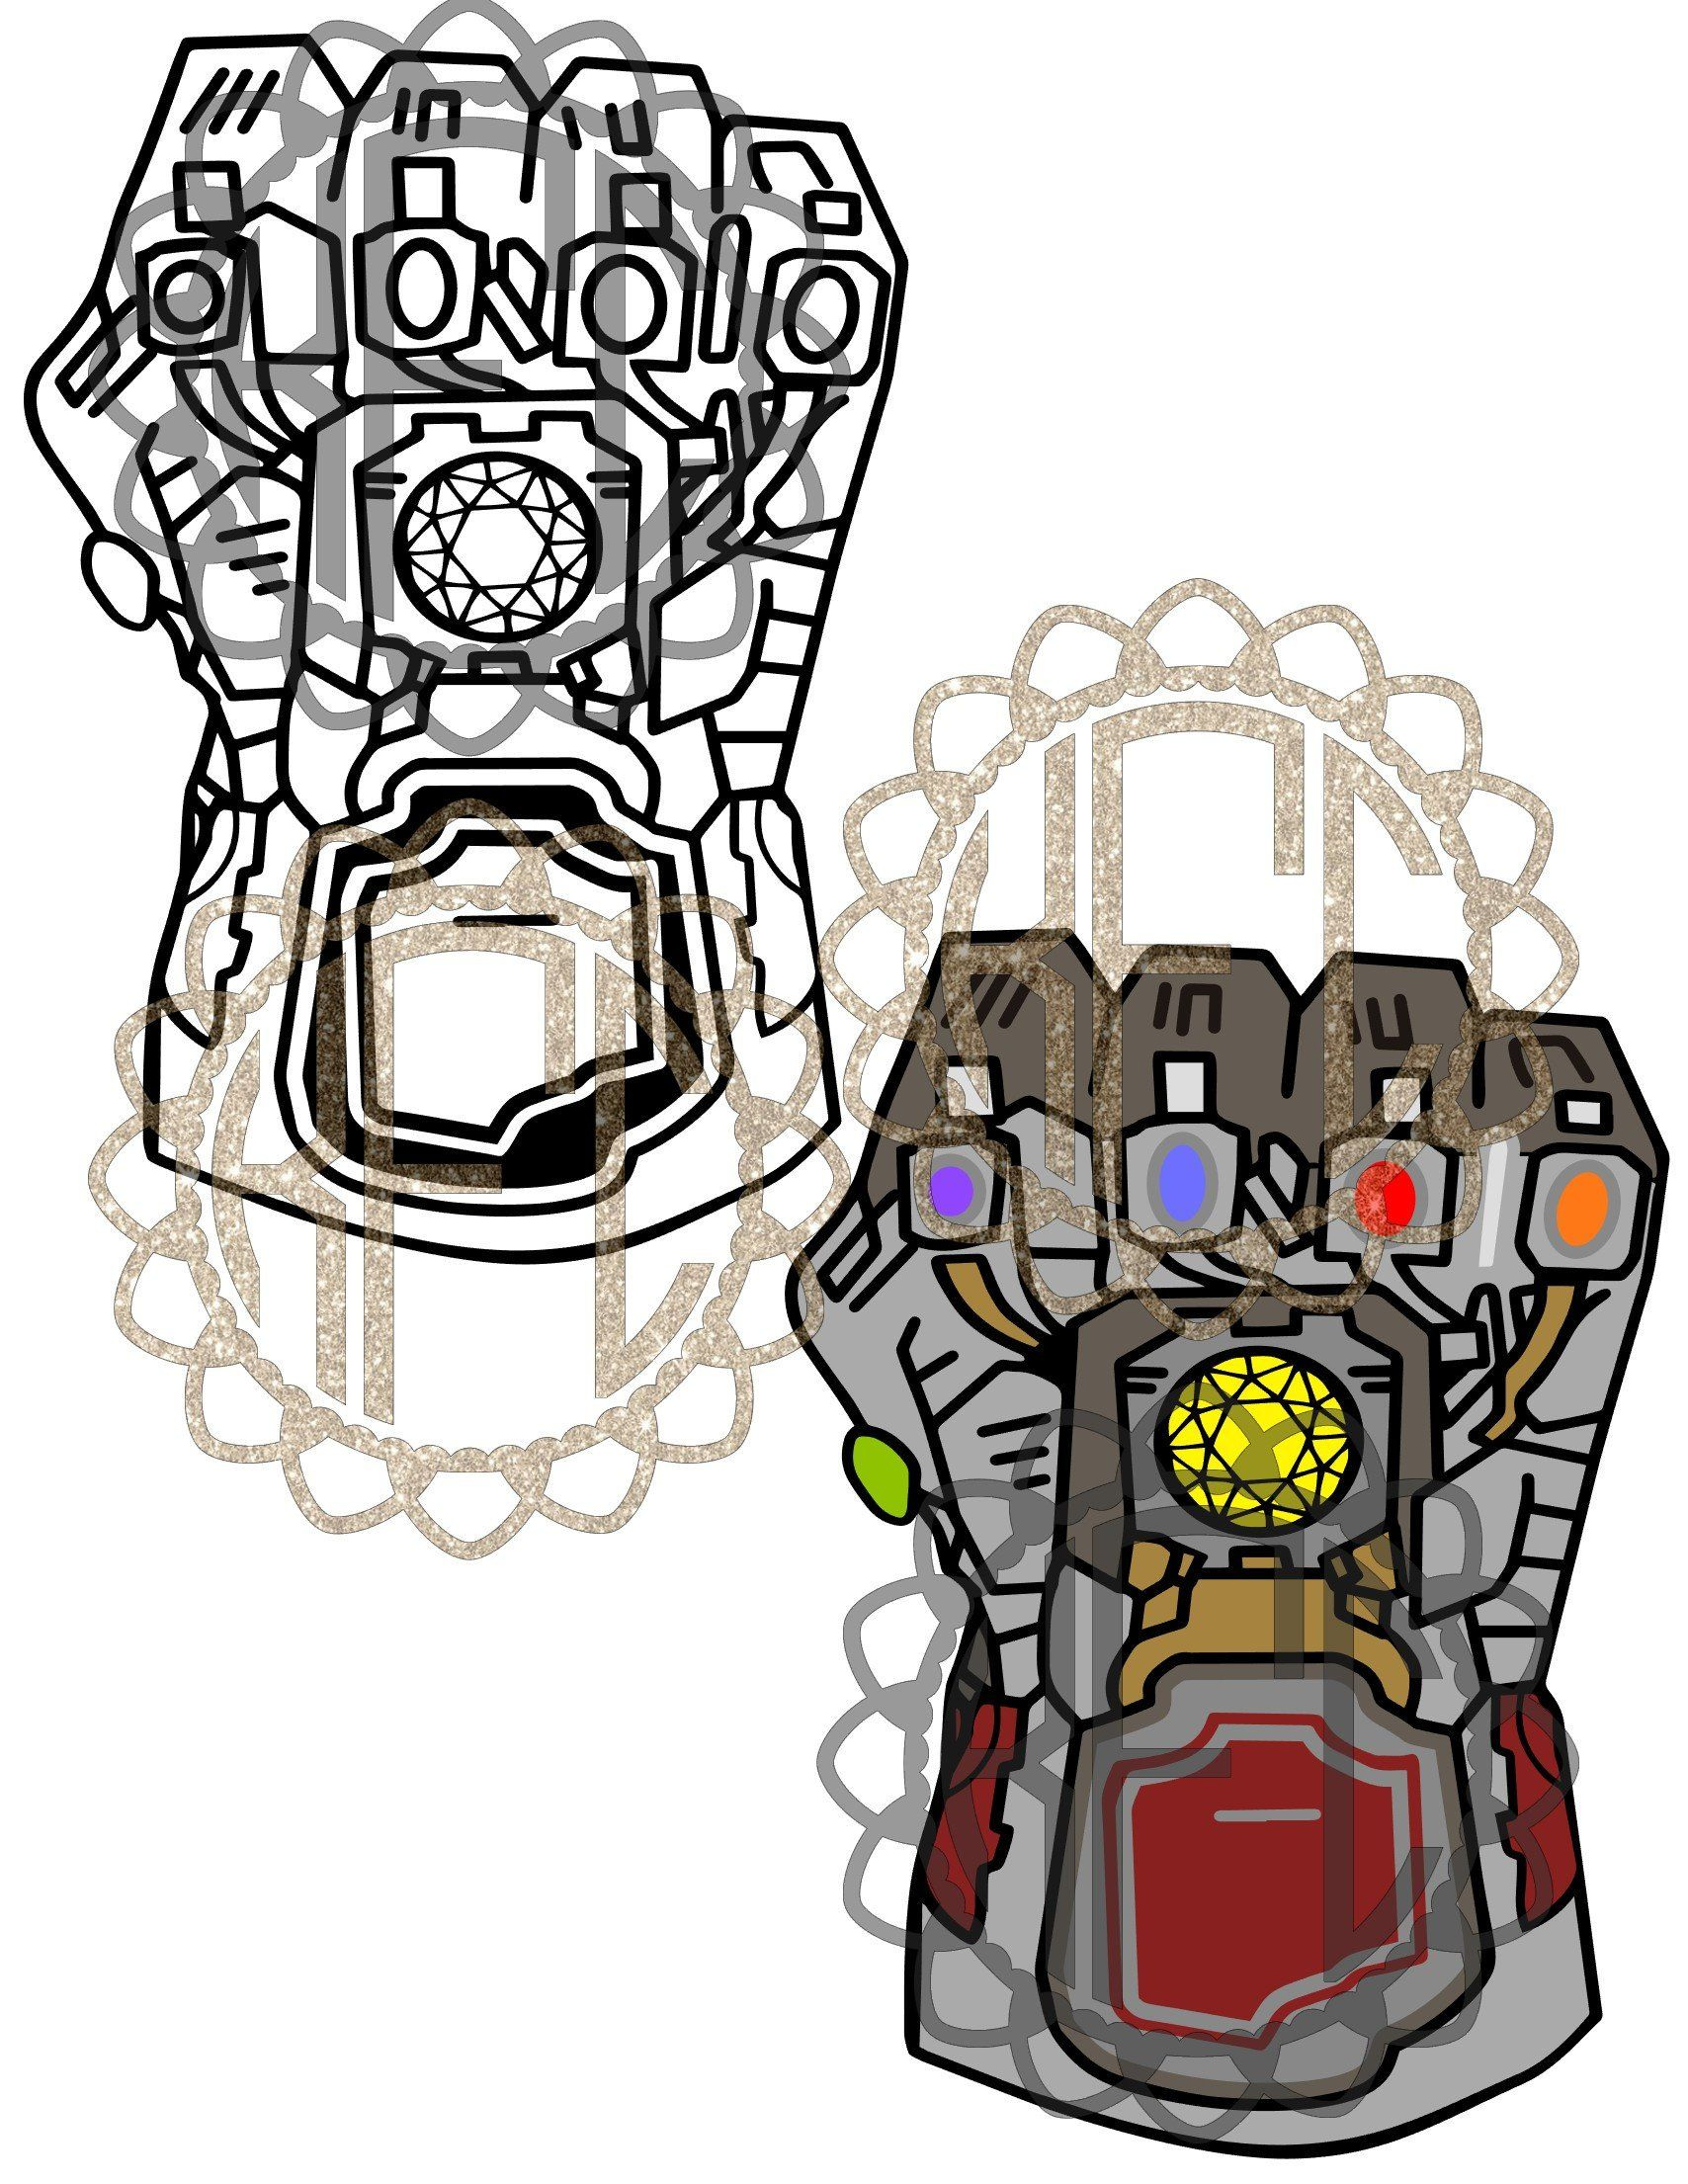 Avengers end game black and white clipart png graphic library download Avengers Endgame Electric infinity gauntlet ironman hulk version svg ... graphic library download